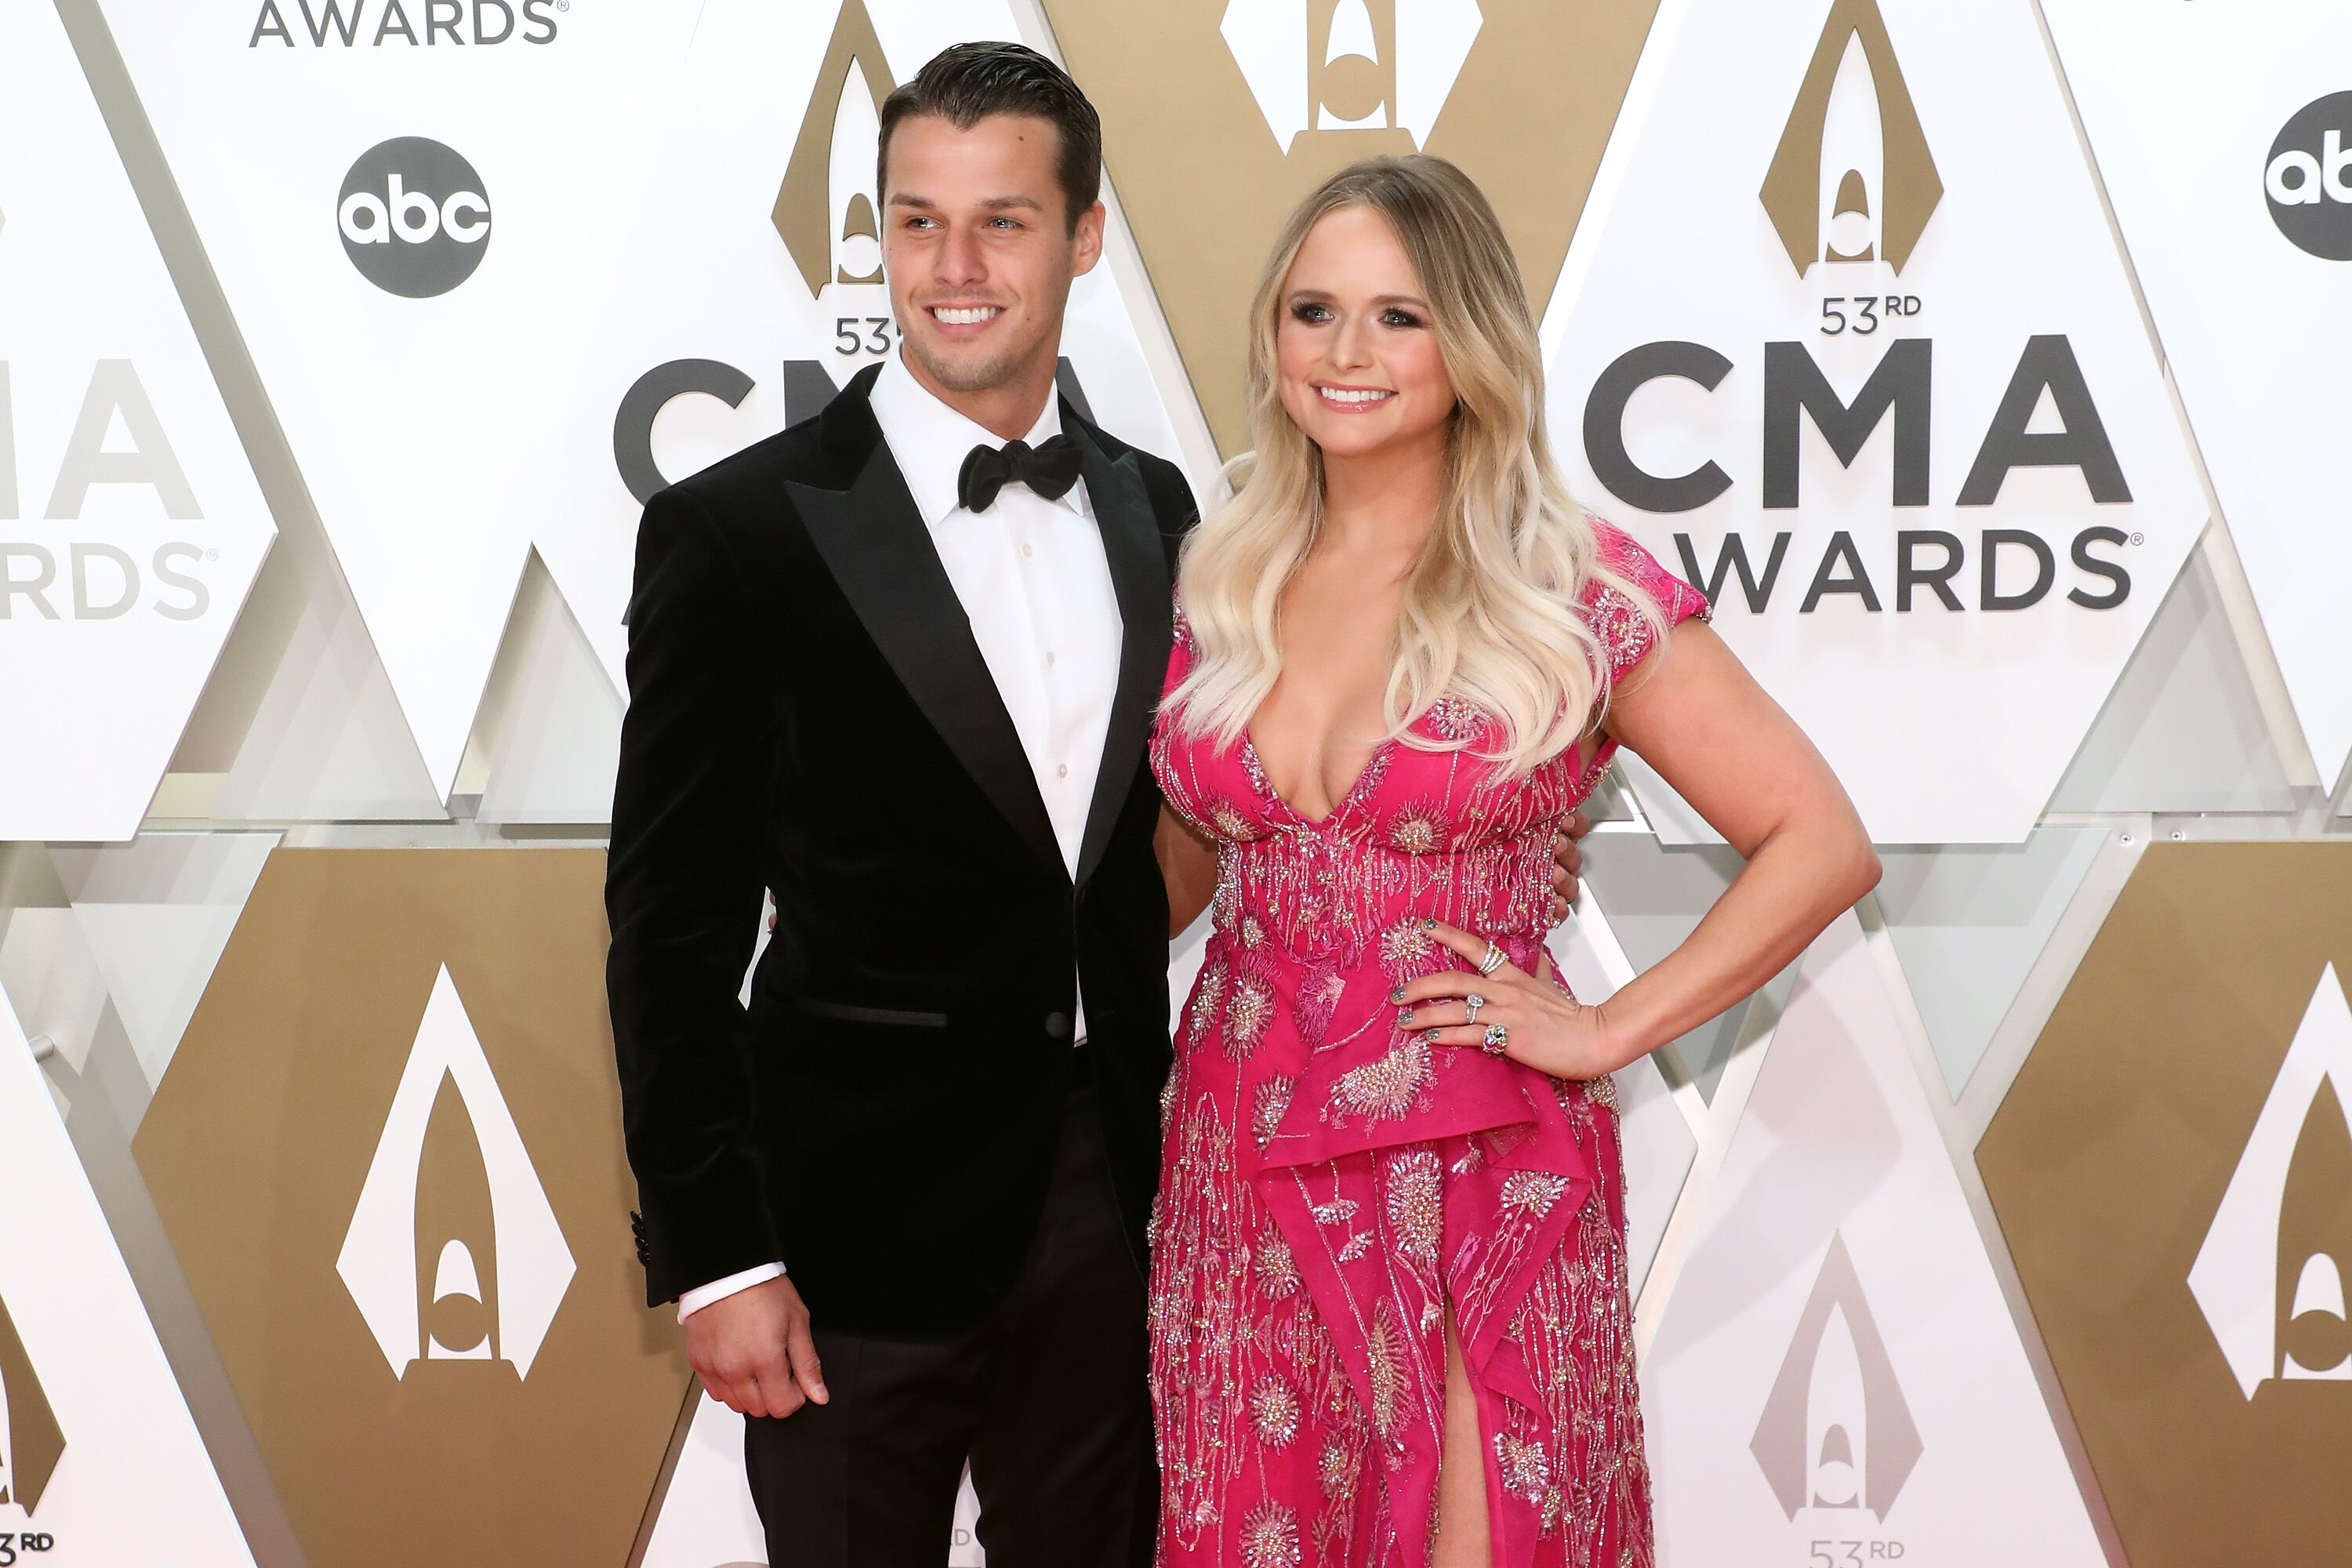 Brendan McLoughlin and Miranda Lambert at the 53rd annual CMA Awards at Bridgestone Arena on November 13, 2019, in Nashville, Tennessee | Photo: Taylor Hill/Getty Images